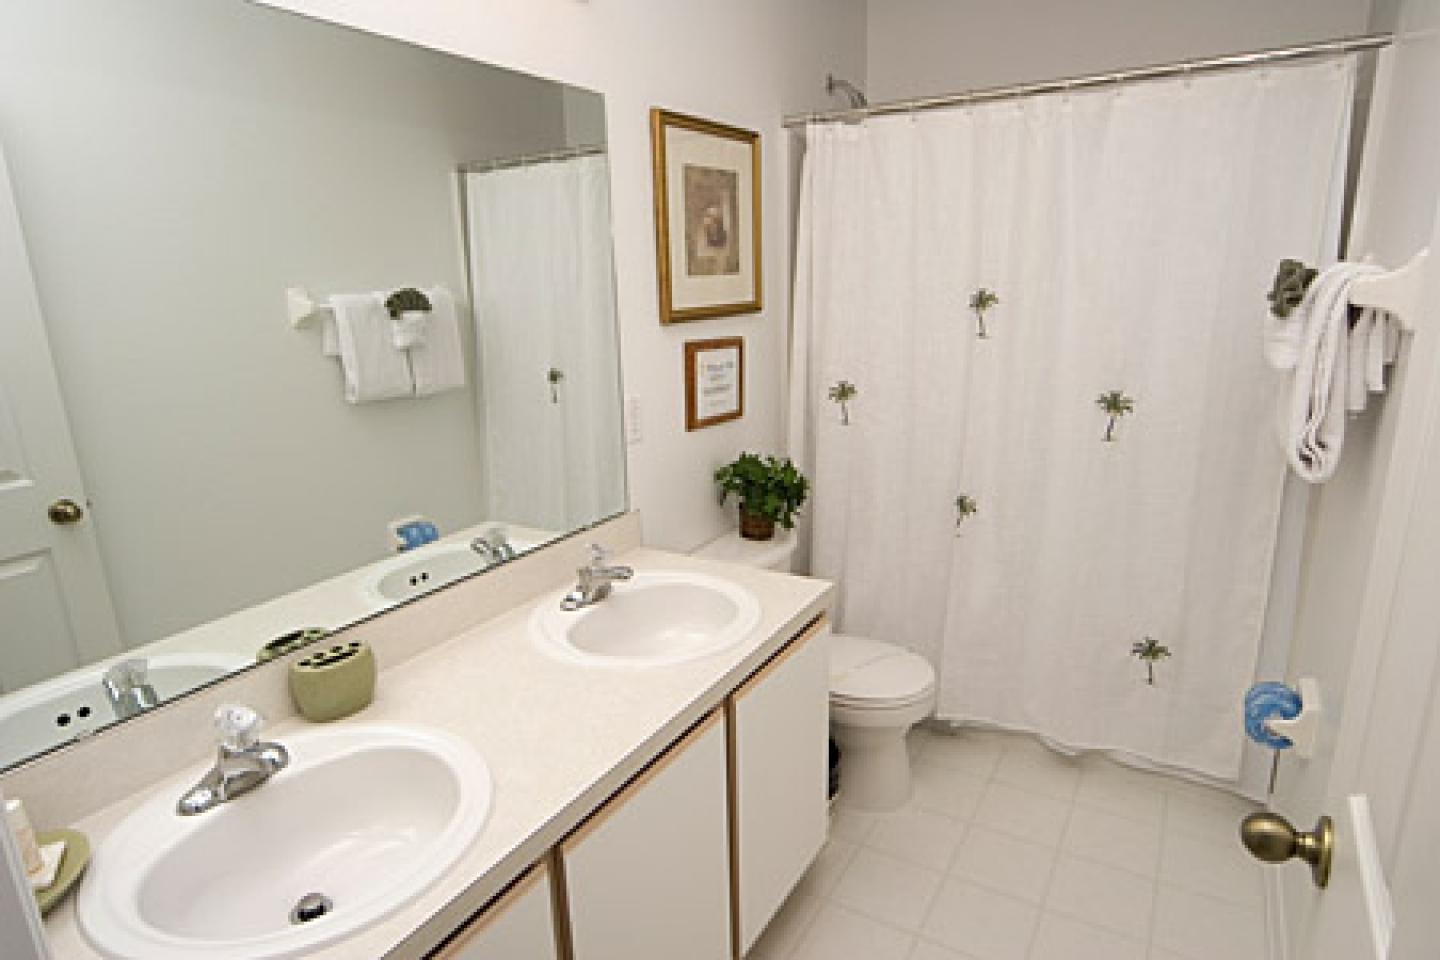 Some of the best small bathroom designs that work well for Compact bathroom designs